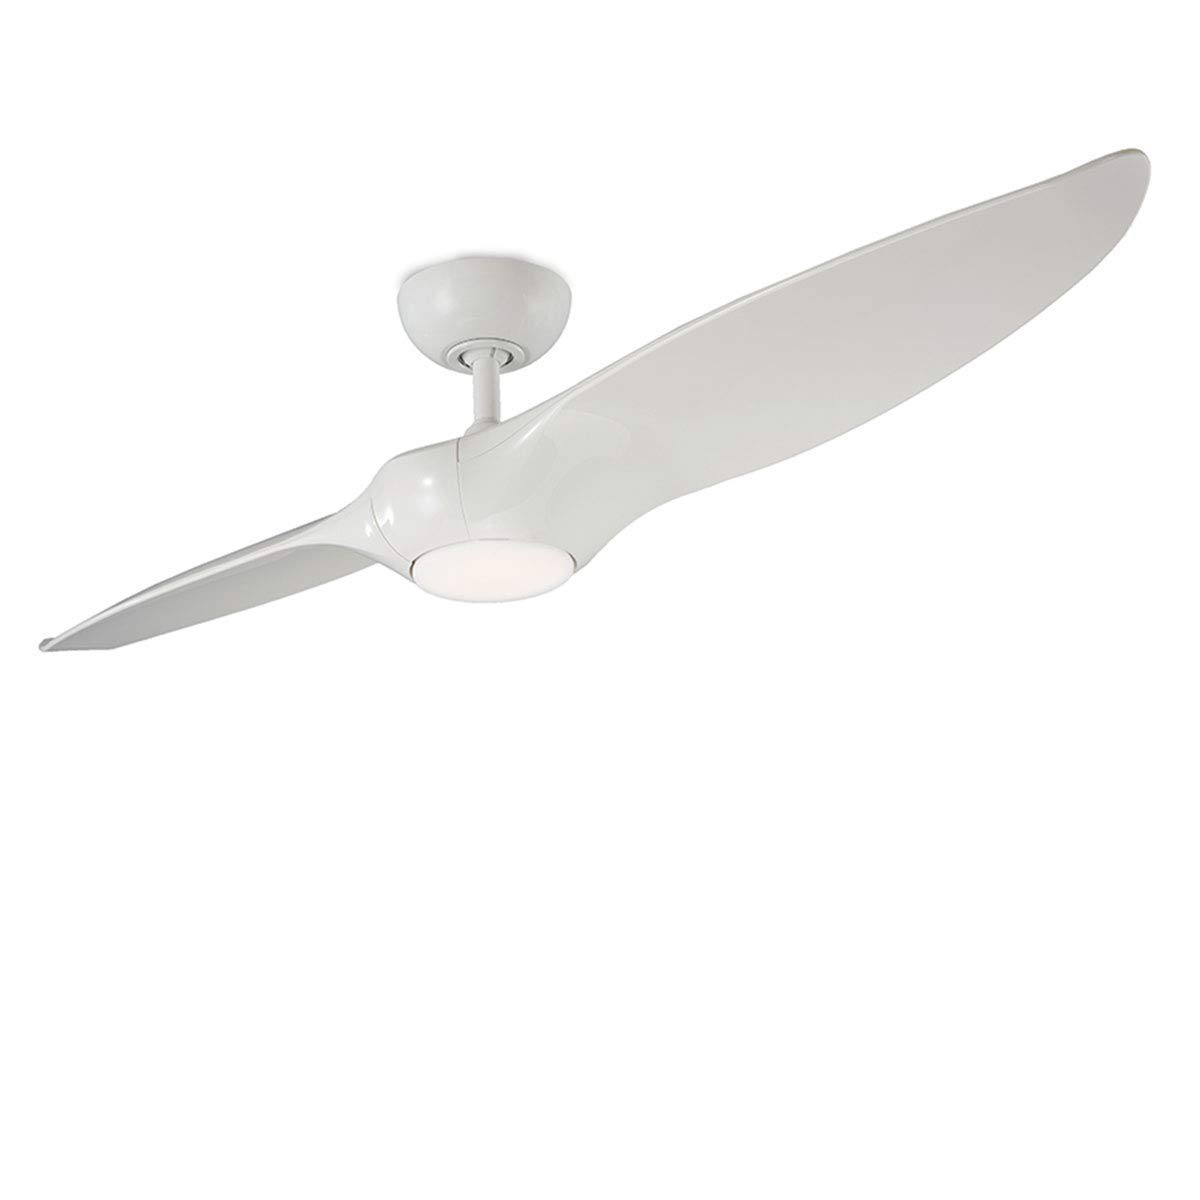 Amazon Com Morpheus Ii Indoor Outdoor 2 Blade Smart Ceiling Fan 60in Gloss White With 3000k Led Light Kit And Wall Control Works With Ios Android Alexa Google Assistant Samsung Smartthings And Ecobee Home Improvement